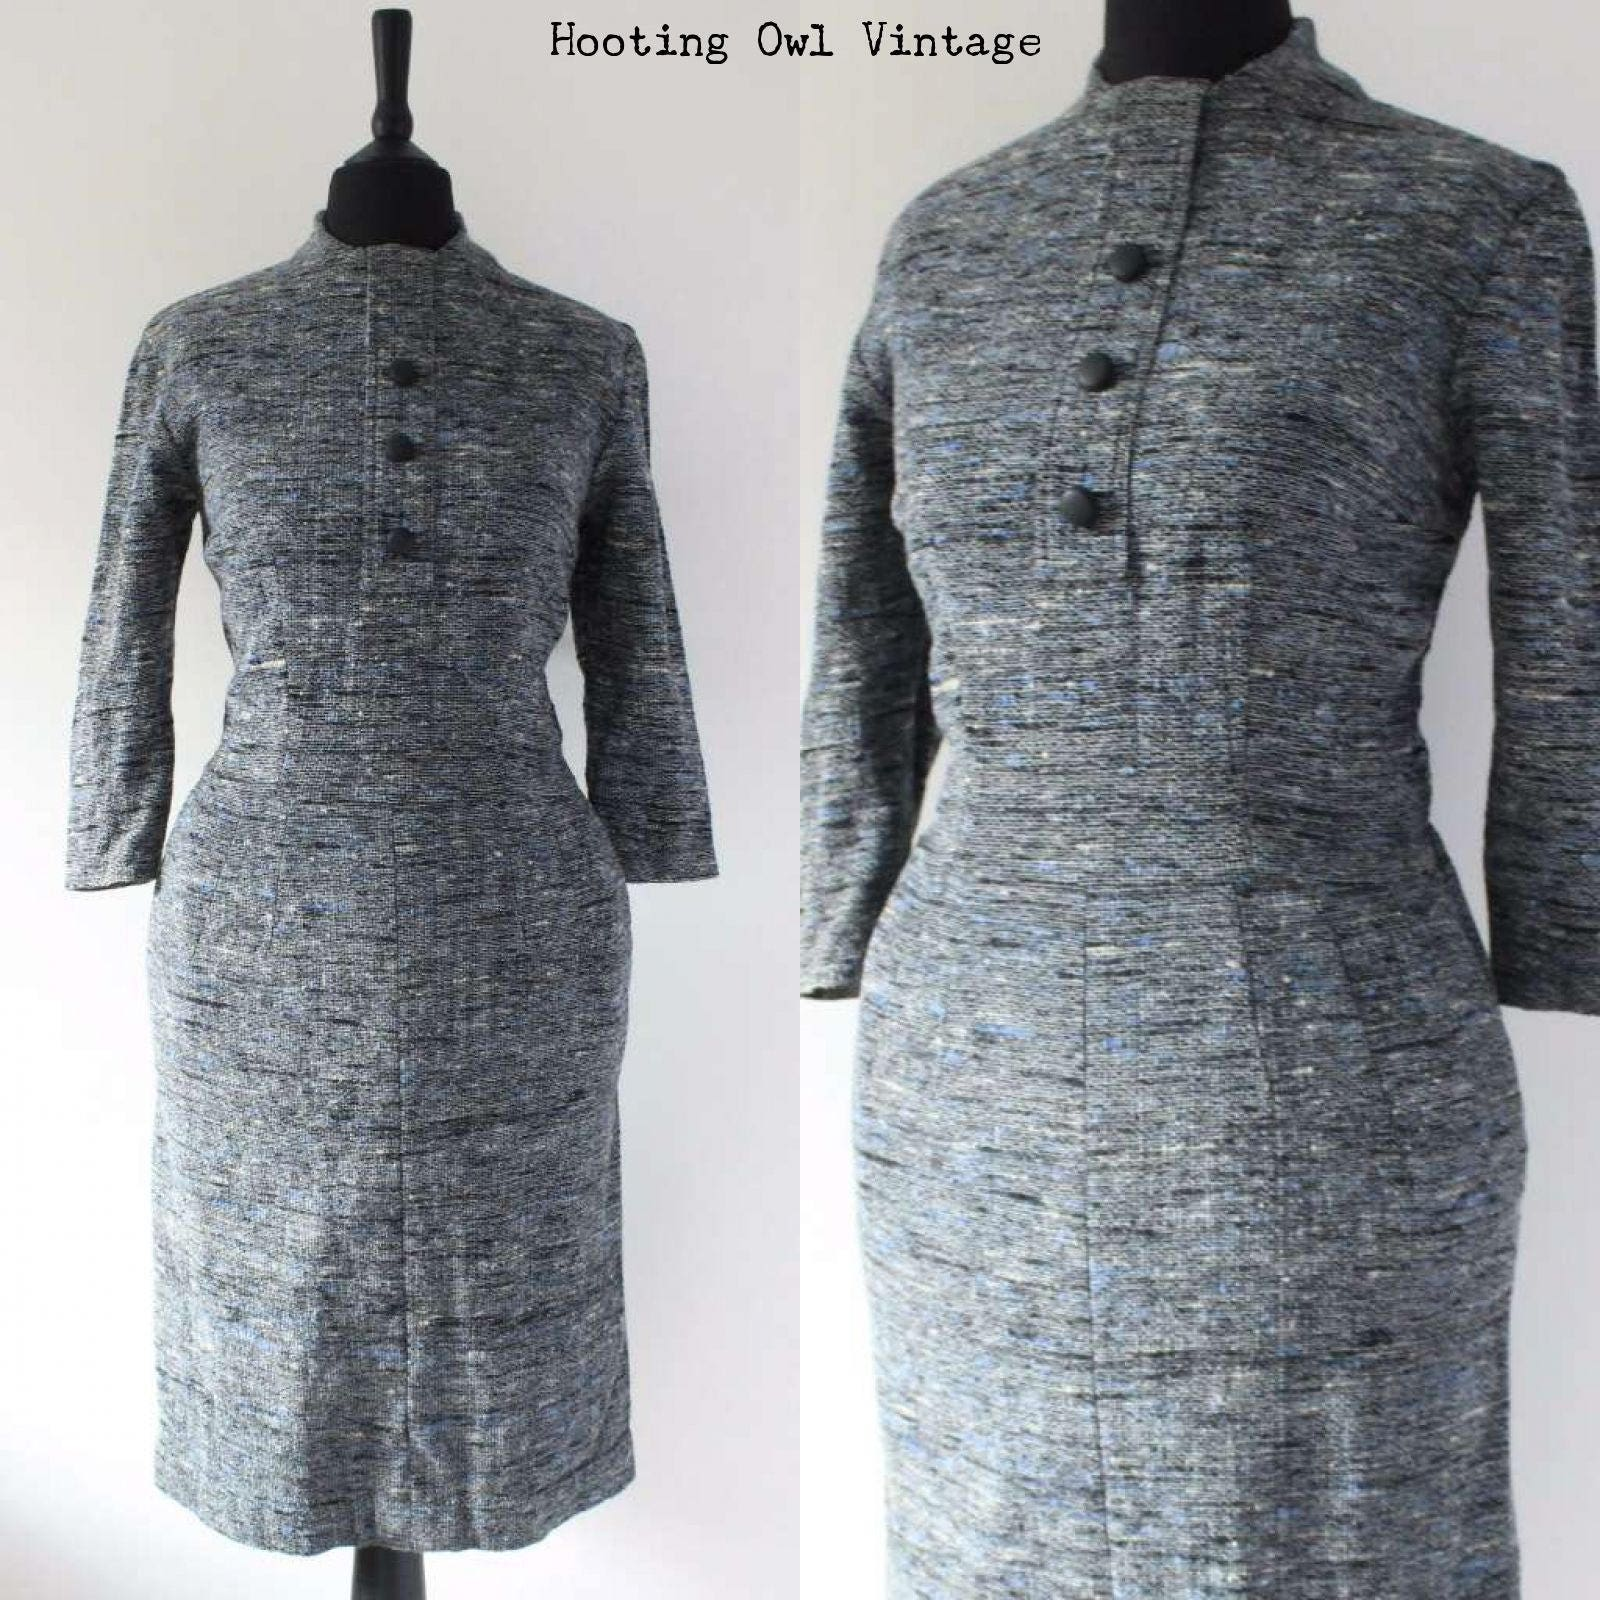 1950s Original Dress 50s Wiggle Pencil Rockabilly Dress Classic Wool Casual Day Dress Grey Flecked Fabric UK Small S 8